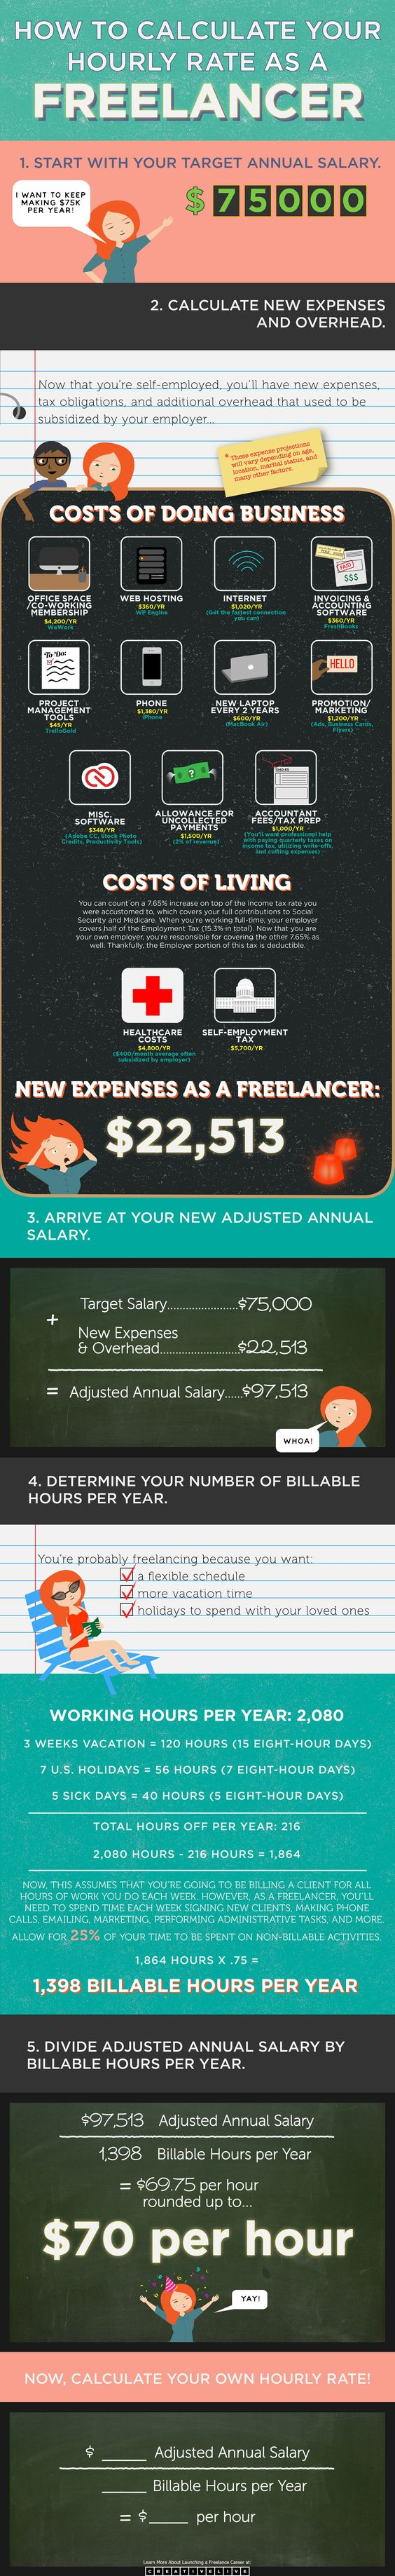 How to Calculate Your Freelance Hourly Rate Infographic by CreativeLive Final- GREAT EXAMPLE!!!